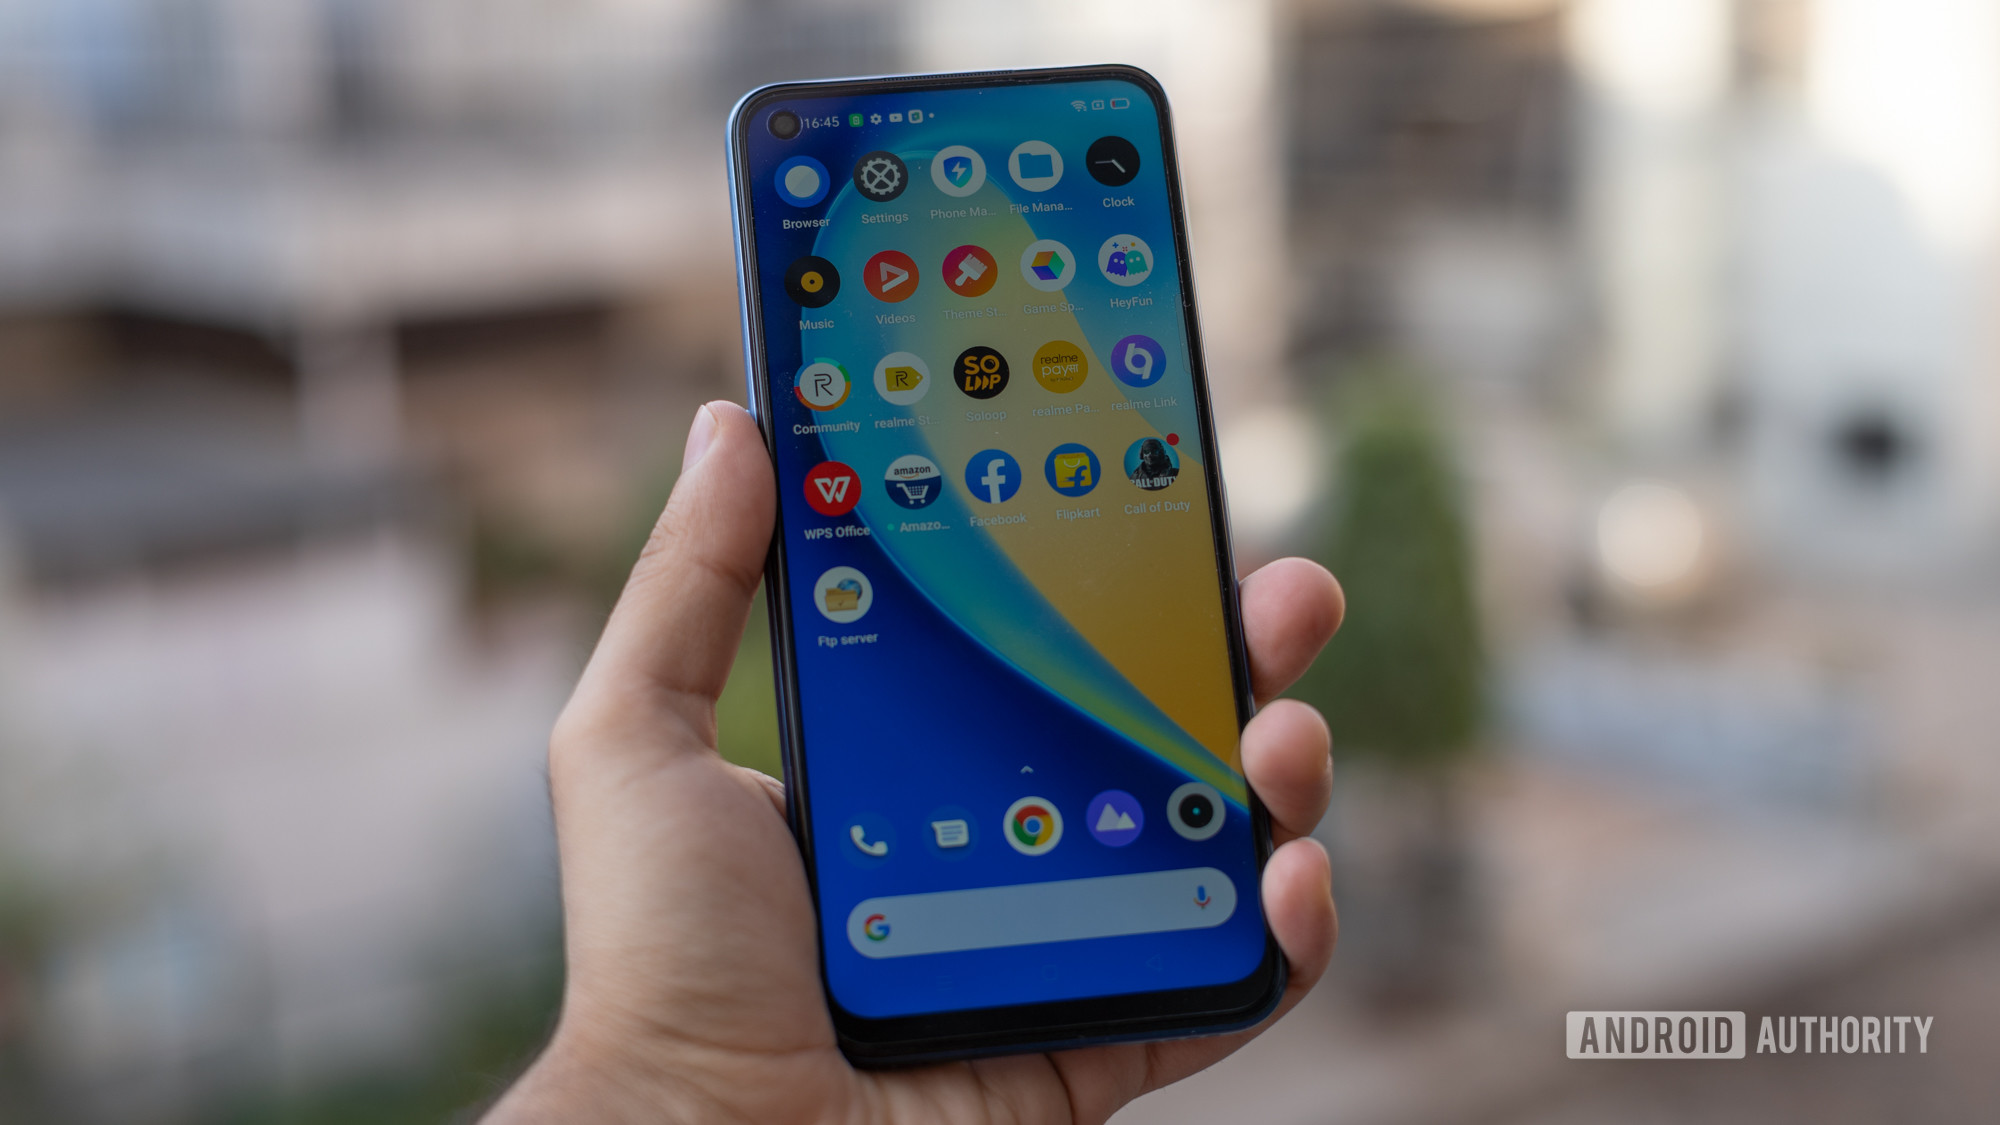 Realme Narzo 30 Pro review in hand showing display